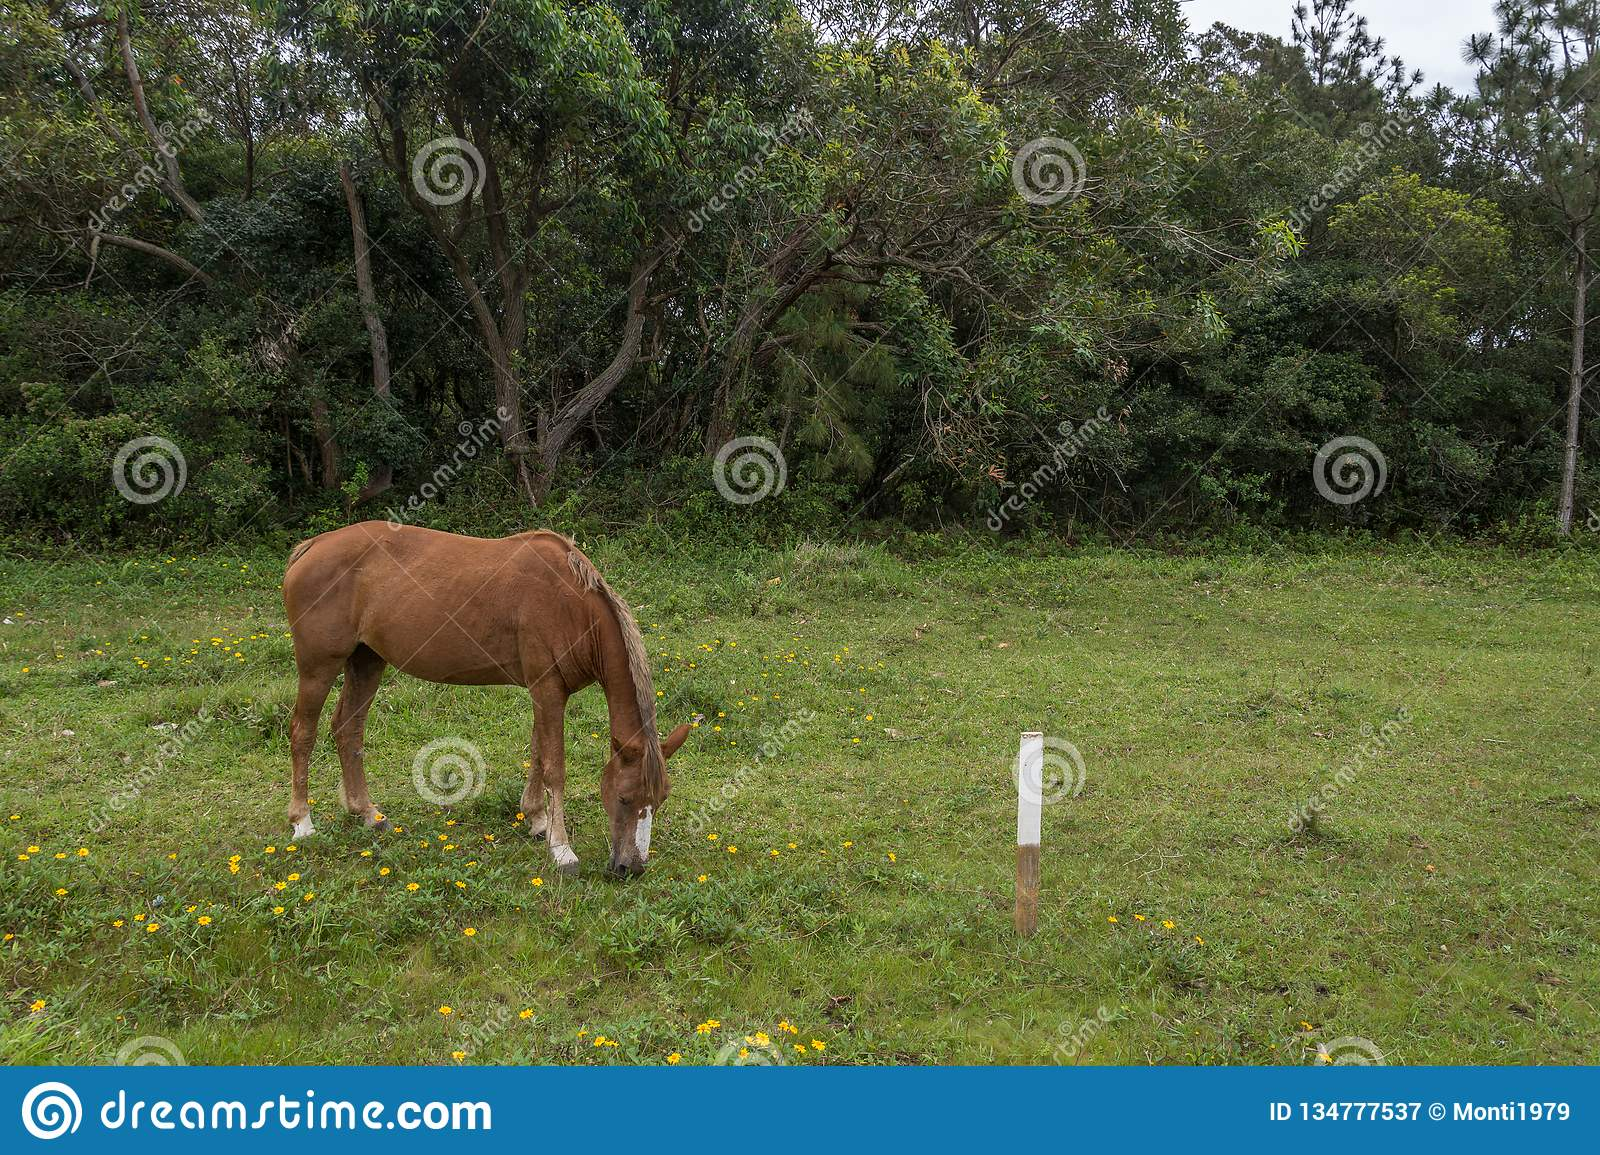 Borwn horse grazing on a grass field with small yellow flowers, in the Campeche, Florianopolis, Brazil